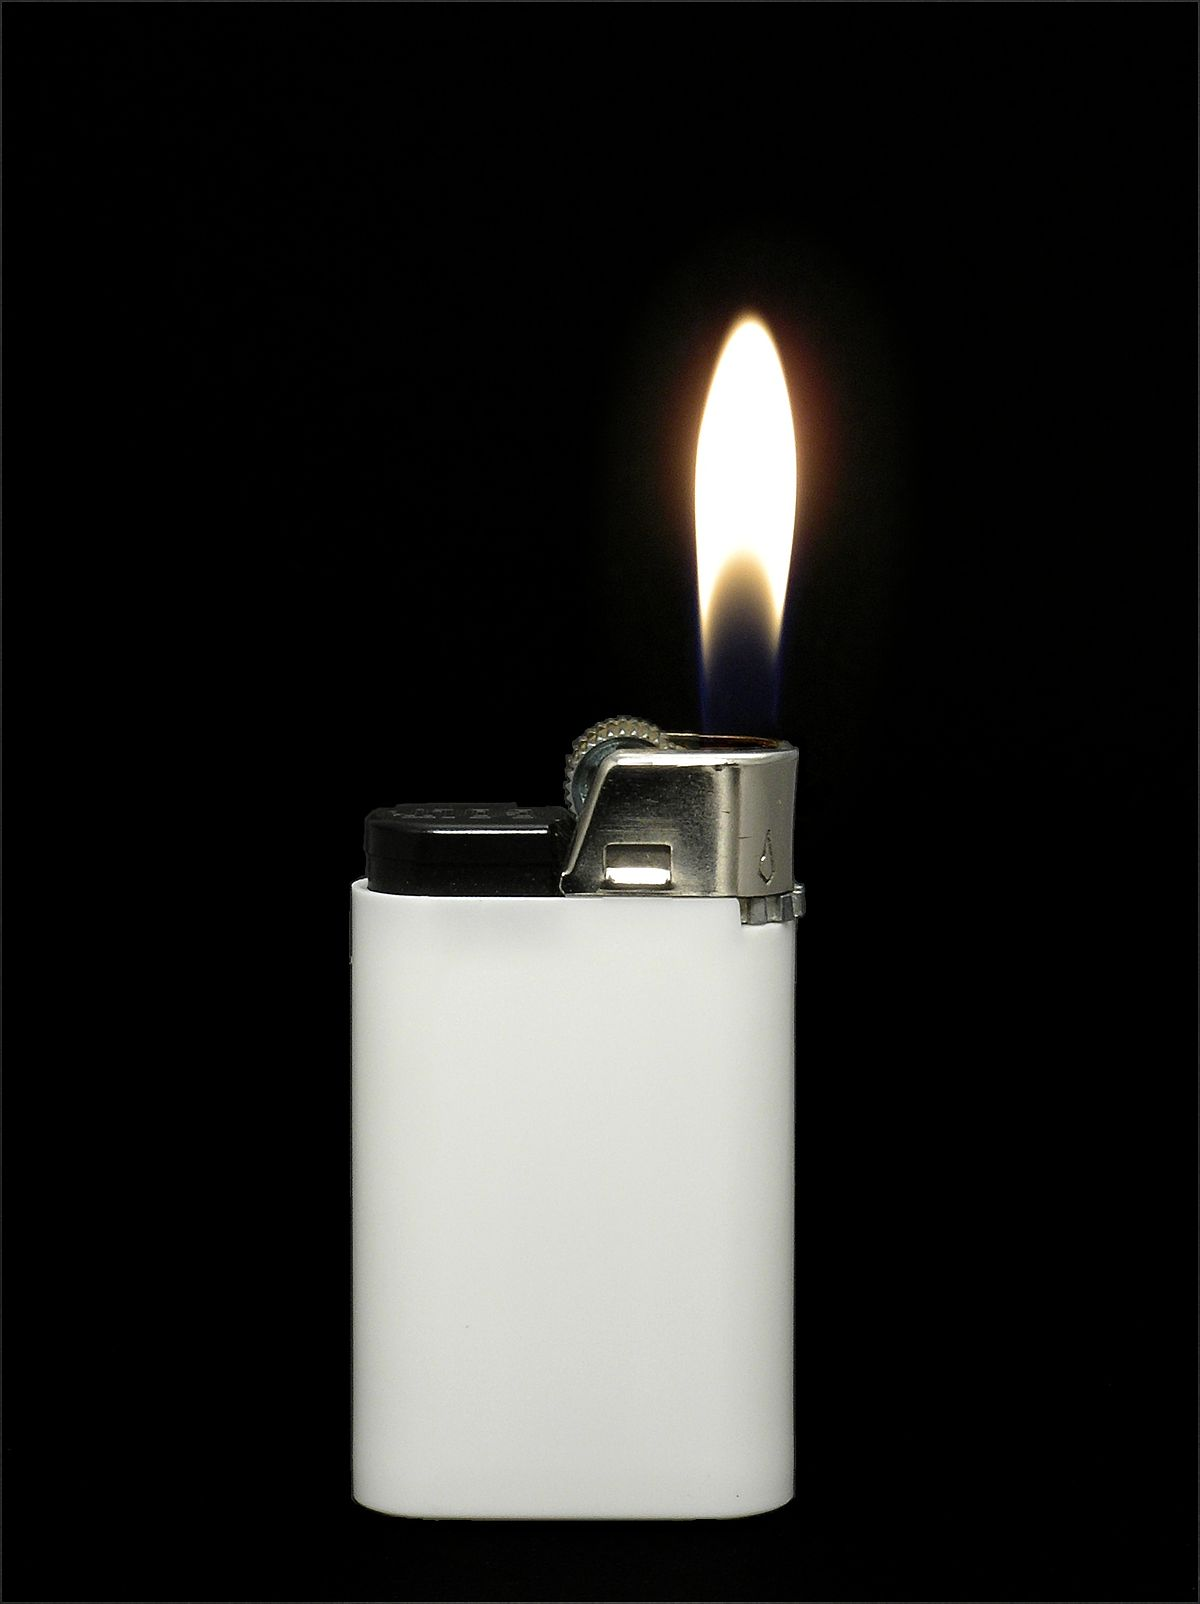 1200px-White_lighter_with_flame.JPG